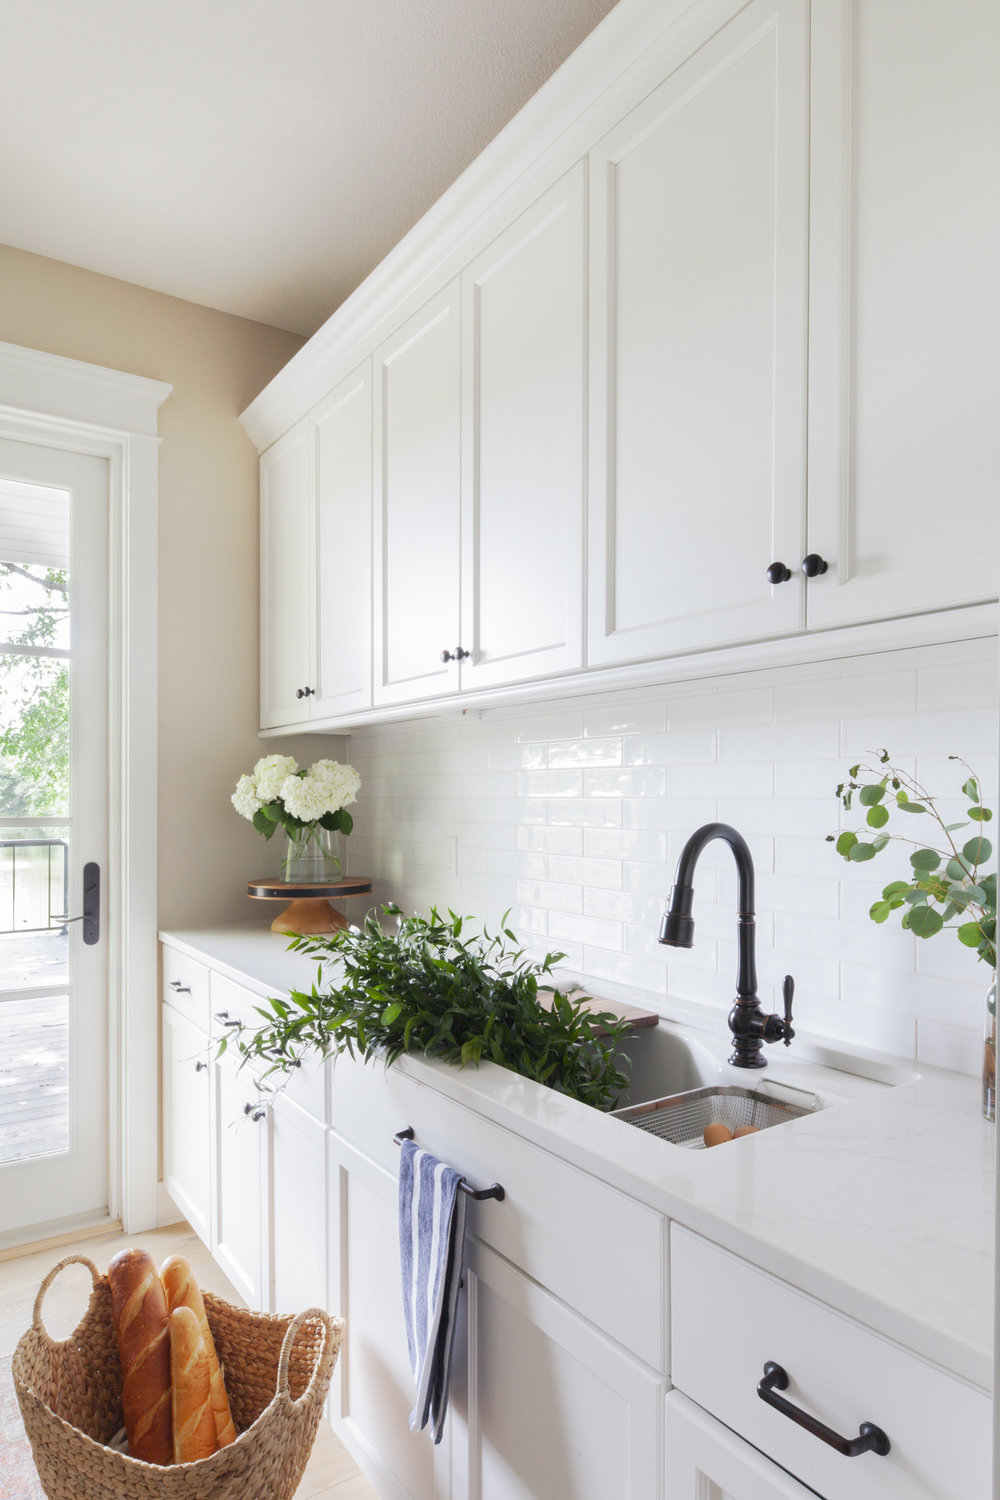 before-and-after-home-reveal-scout-and-nimble-lake-view-luxe-country-interior-design-butlers-pantry-kitchen-21.jpg